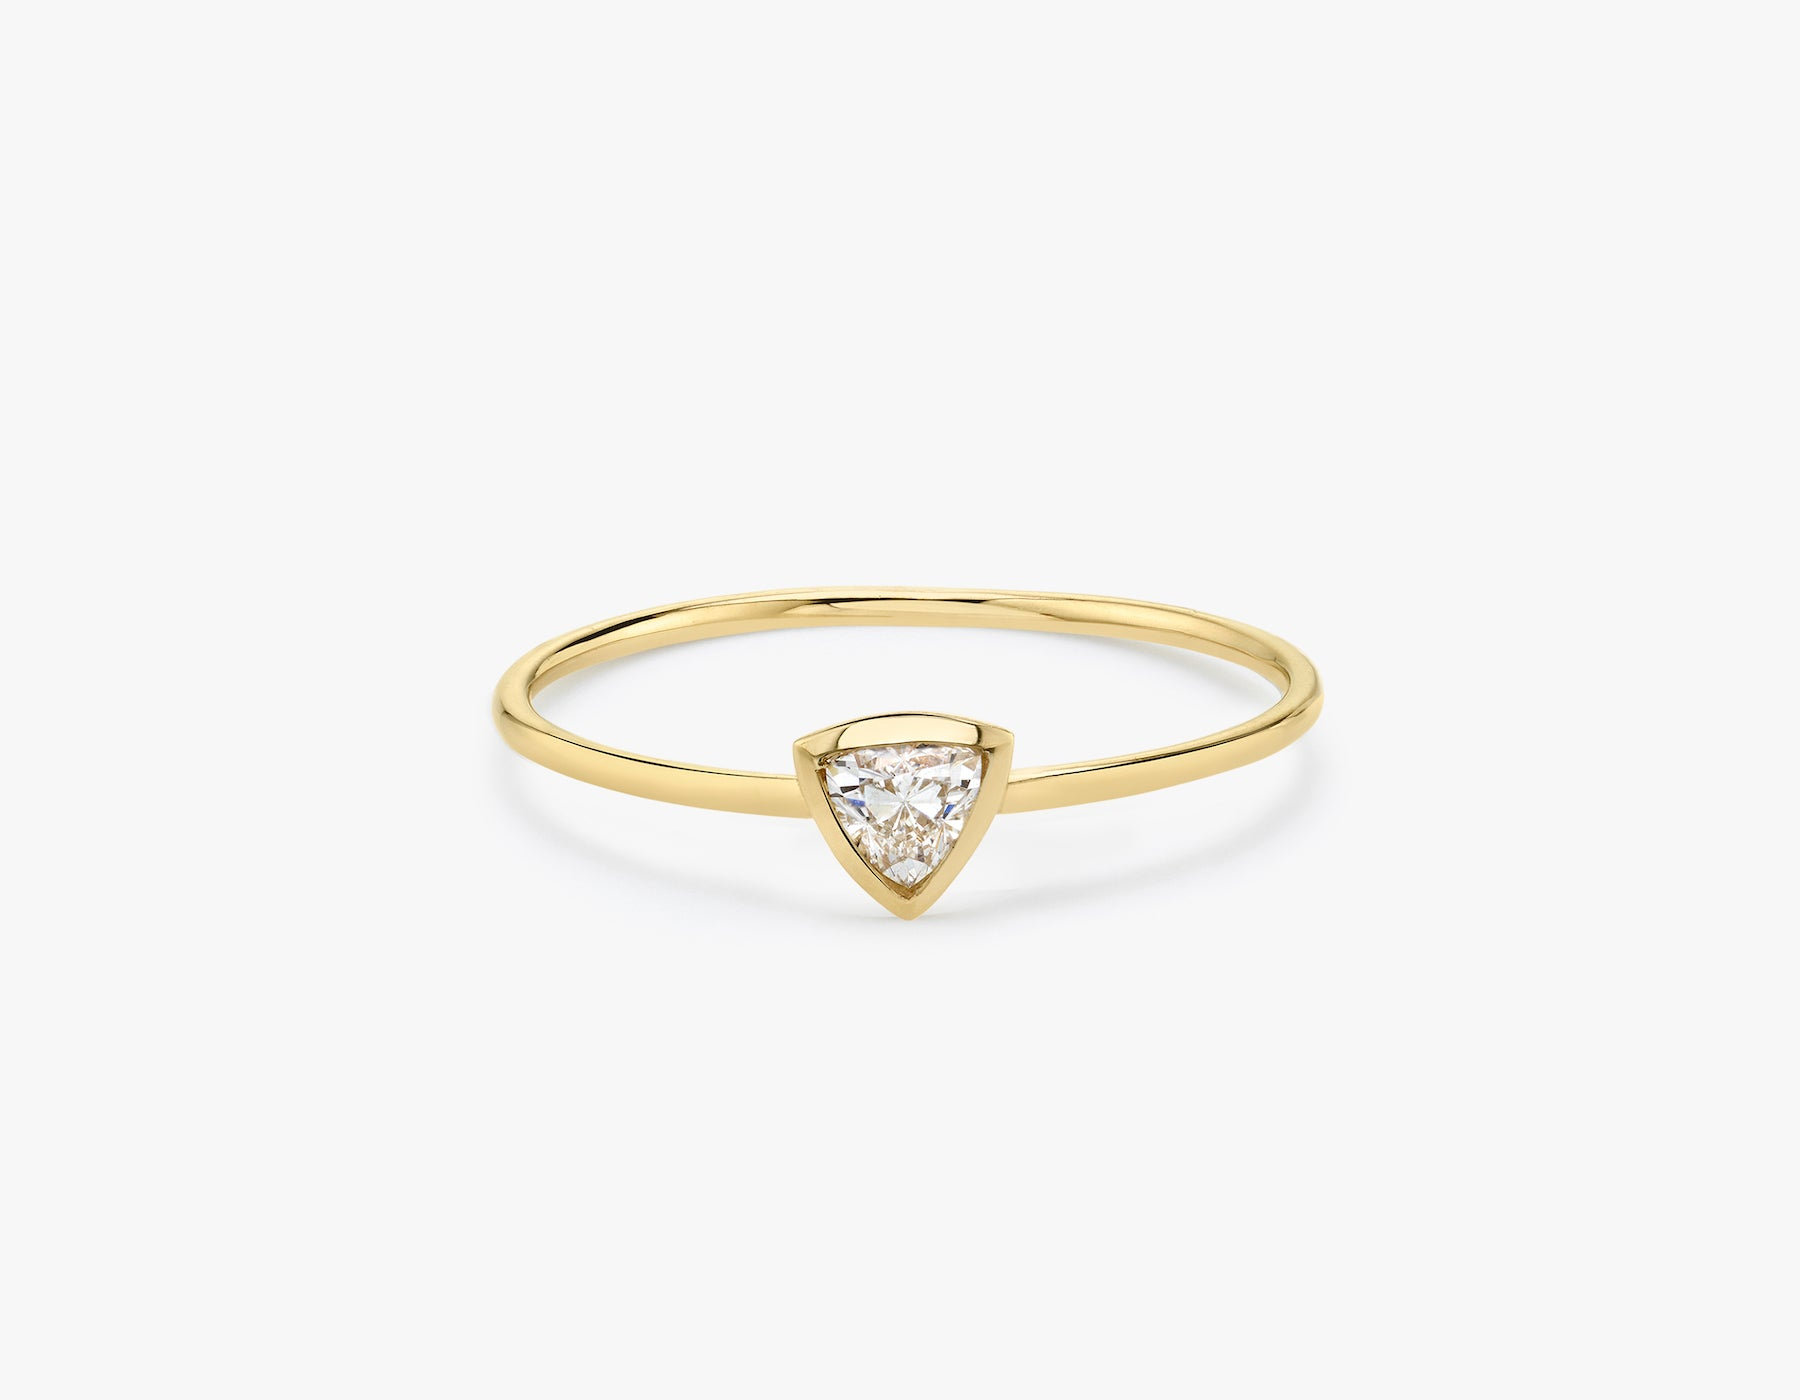 Vrai classic minimalist Trillion Diamond Bezel Ring, 14K Yellow Gold